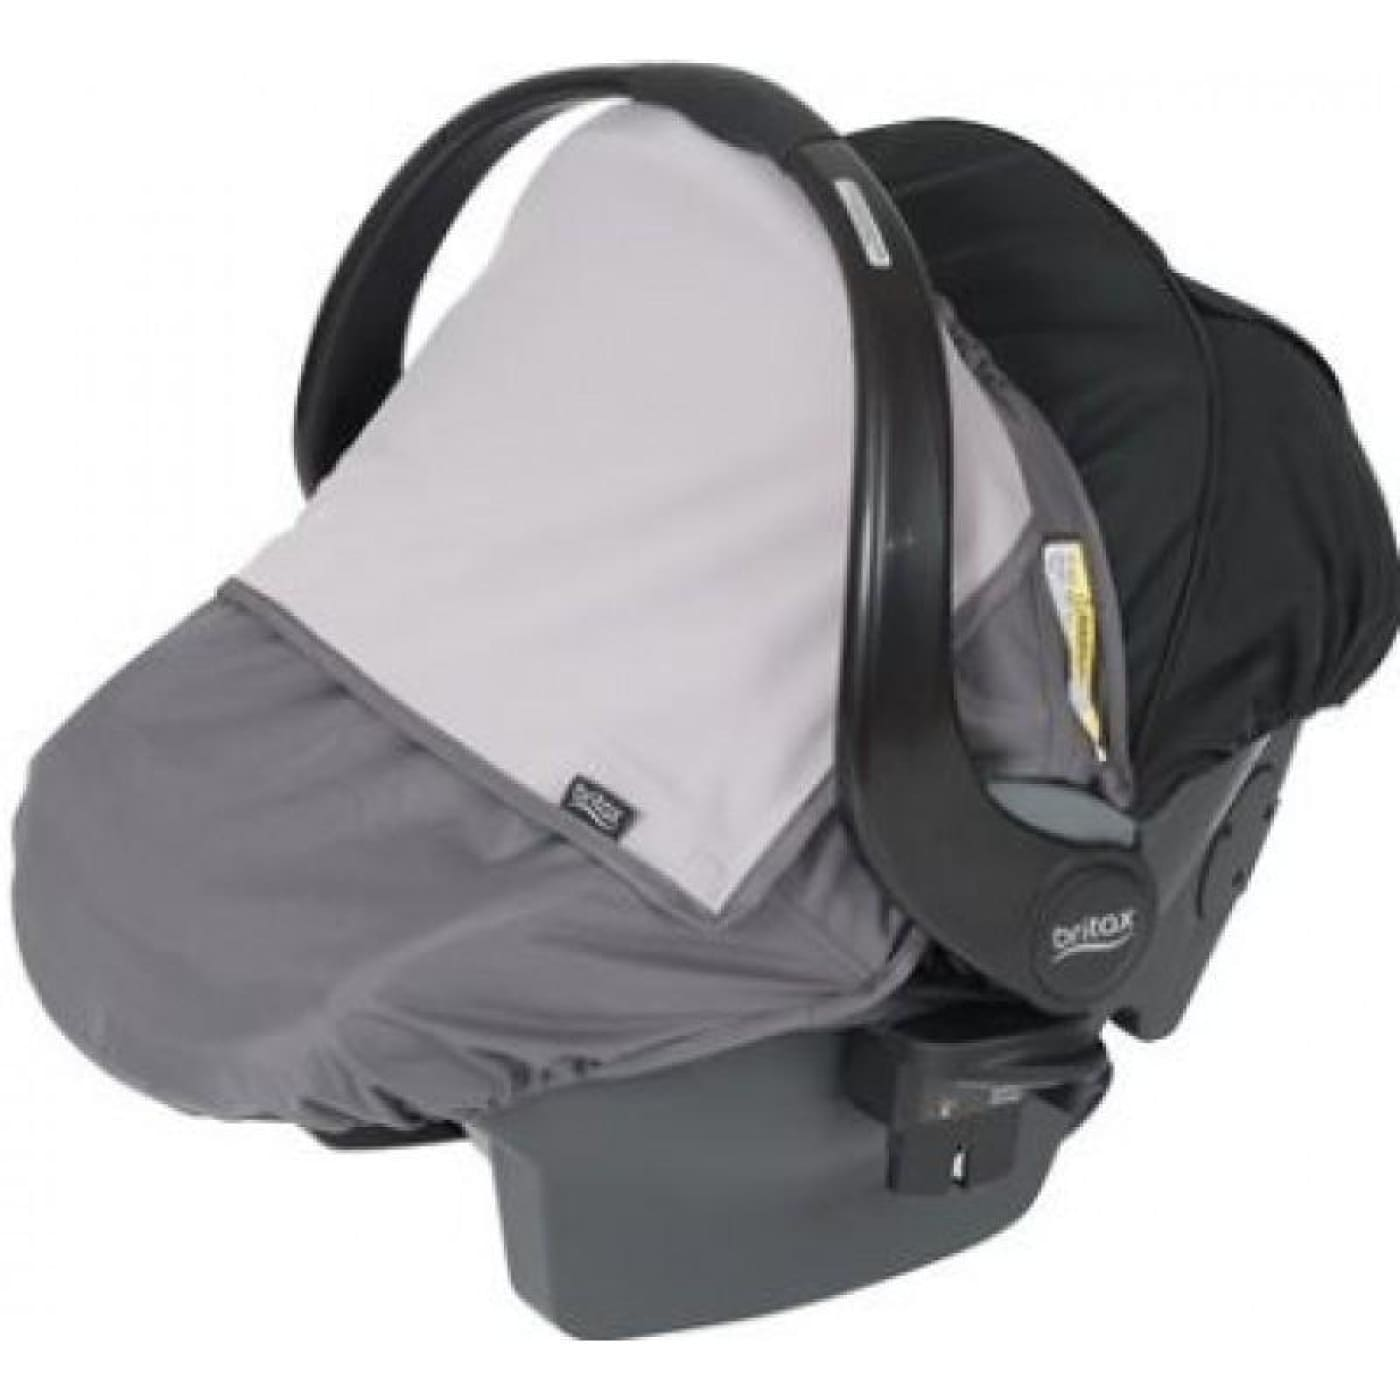 Britax Infant Carrier Shade Cover for Steelcraft/Unity - CAR SEATS - SUNSHADES/WEATHERSHIELDS